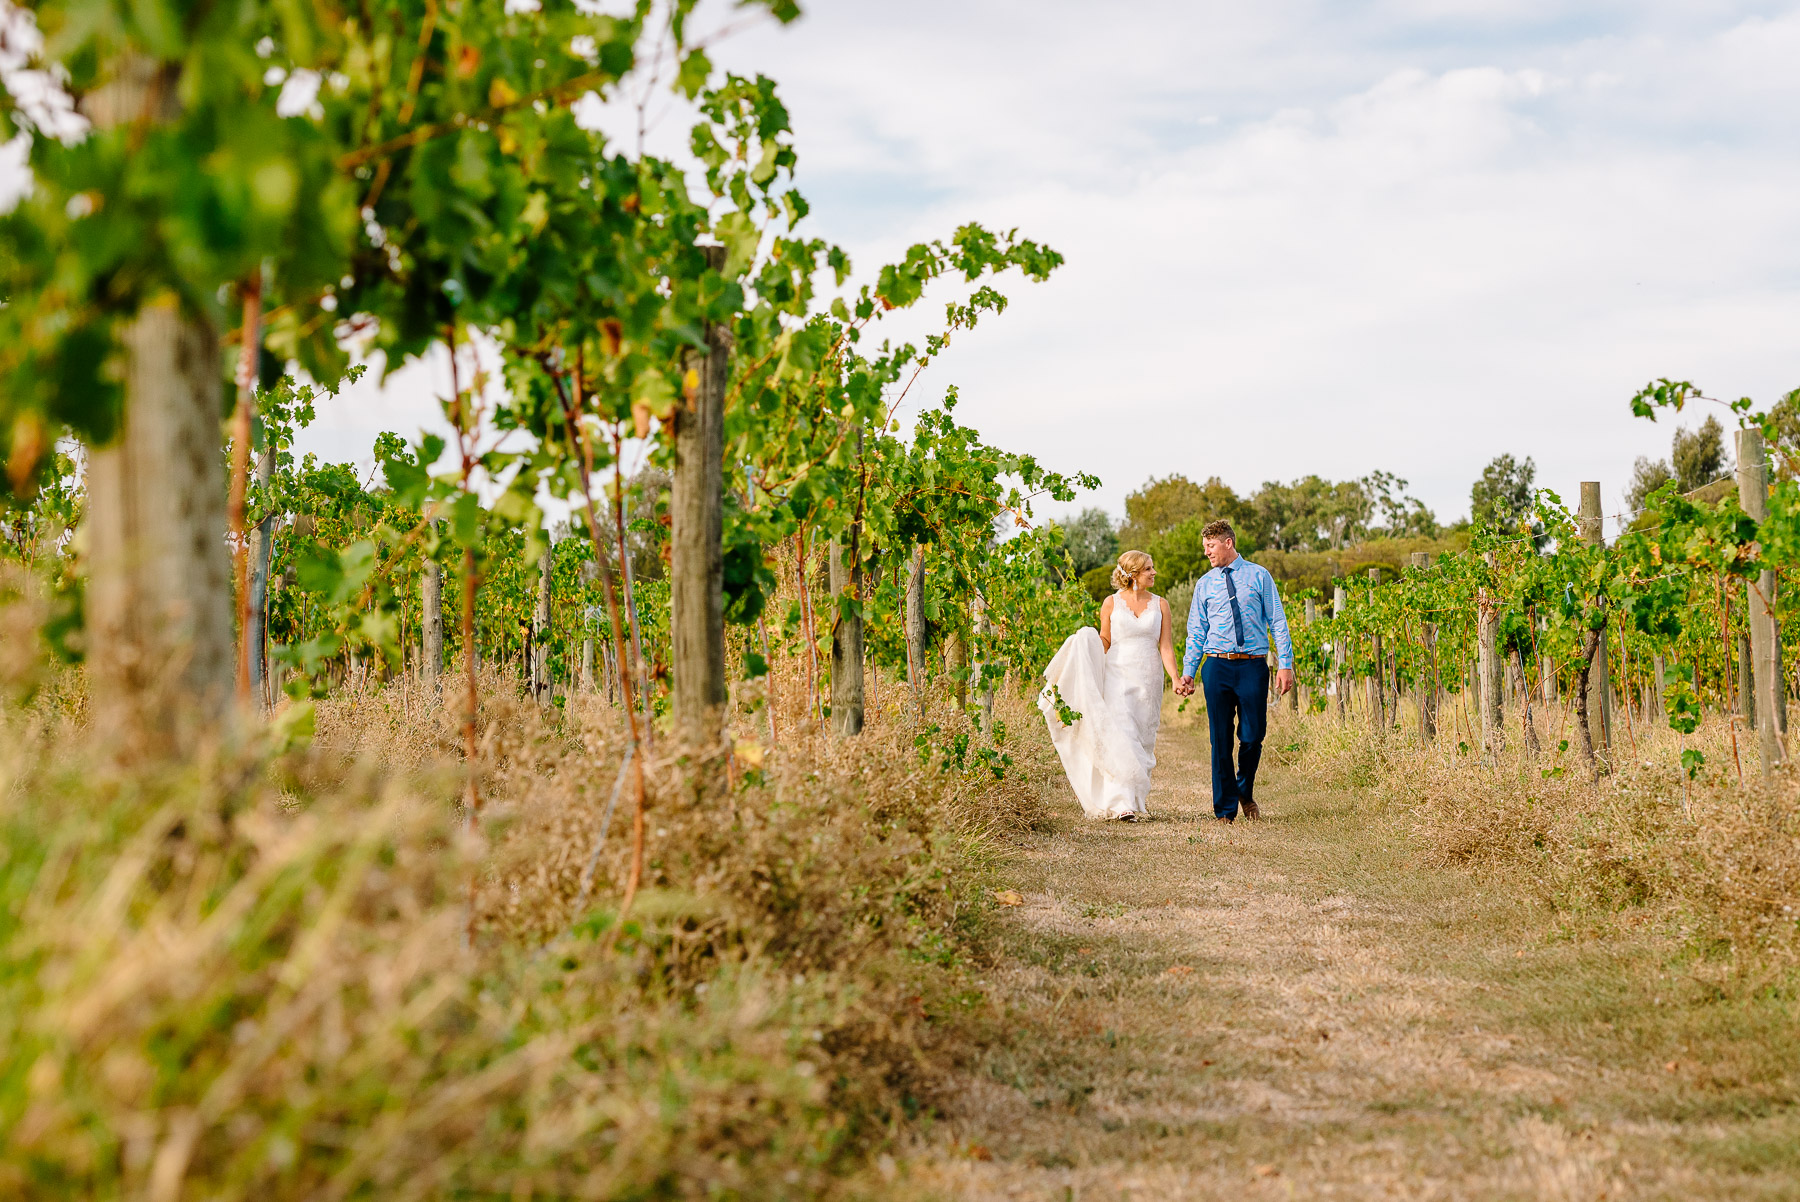 Justin_and_Jim_Best_Of_Wedding_Photography-68.jpg